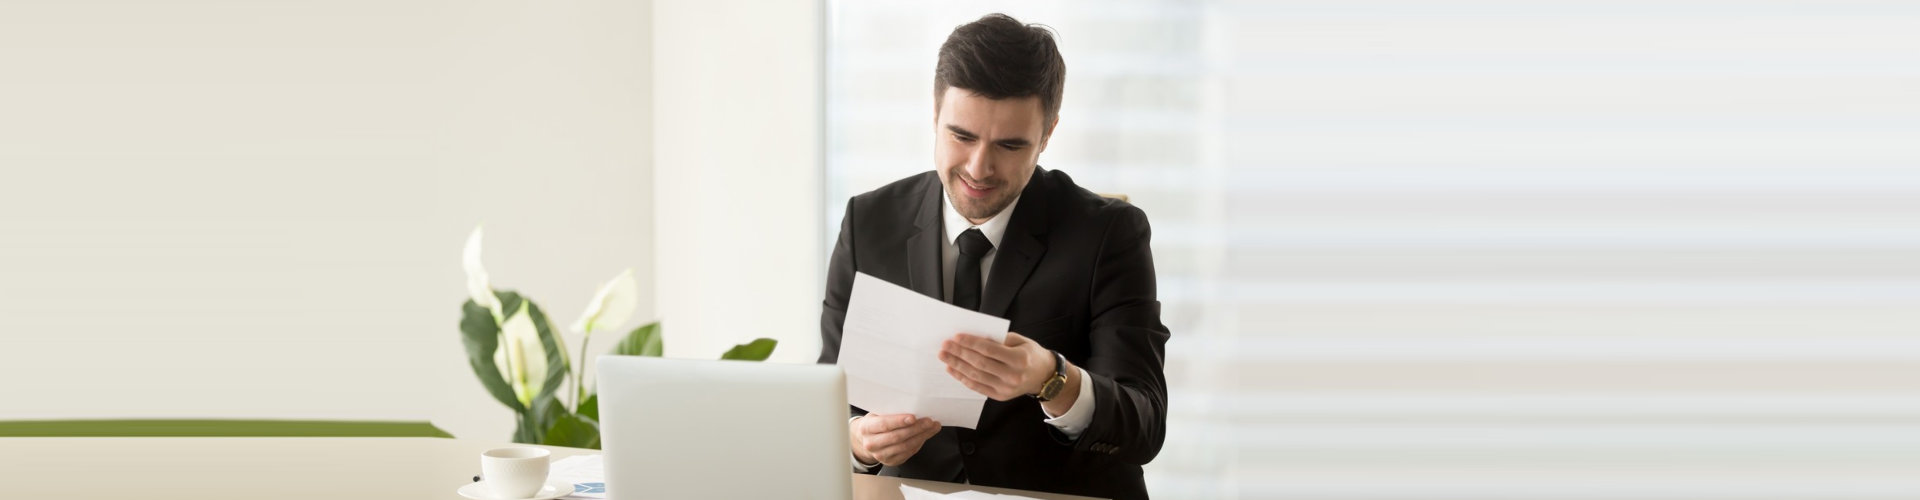 a man holding a paper